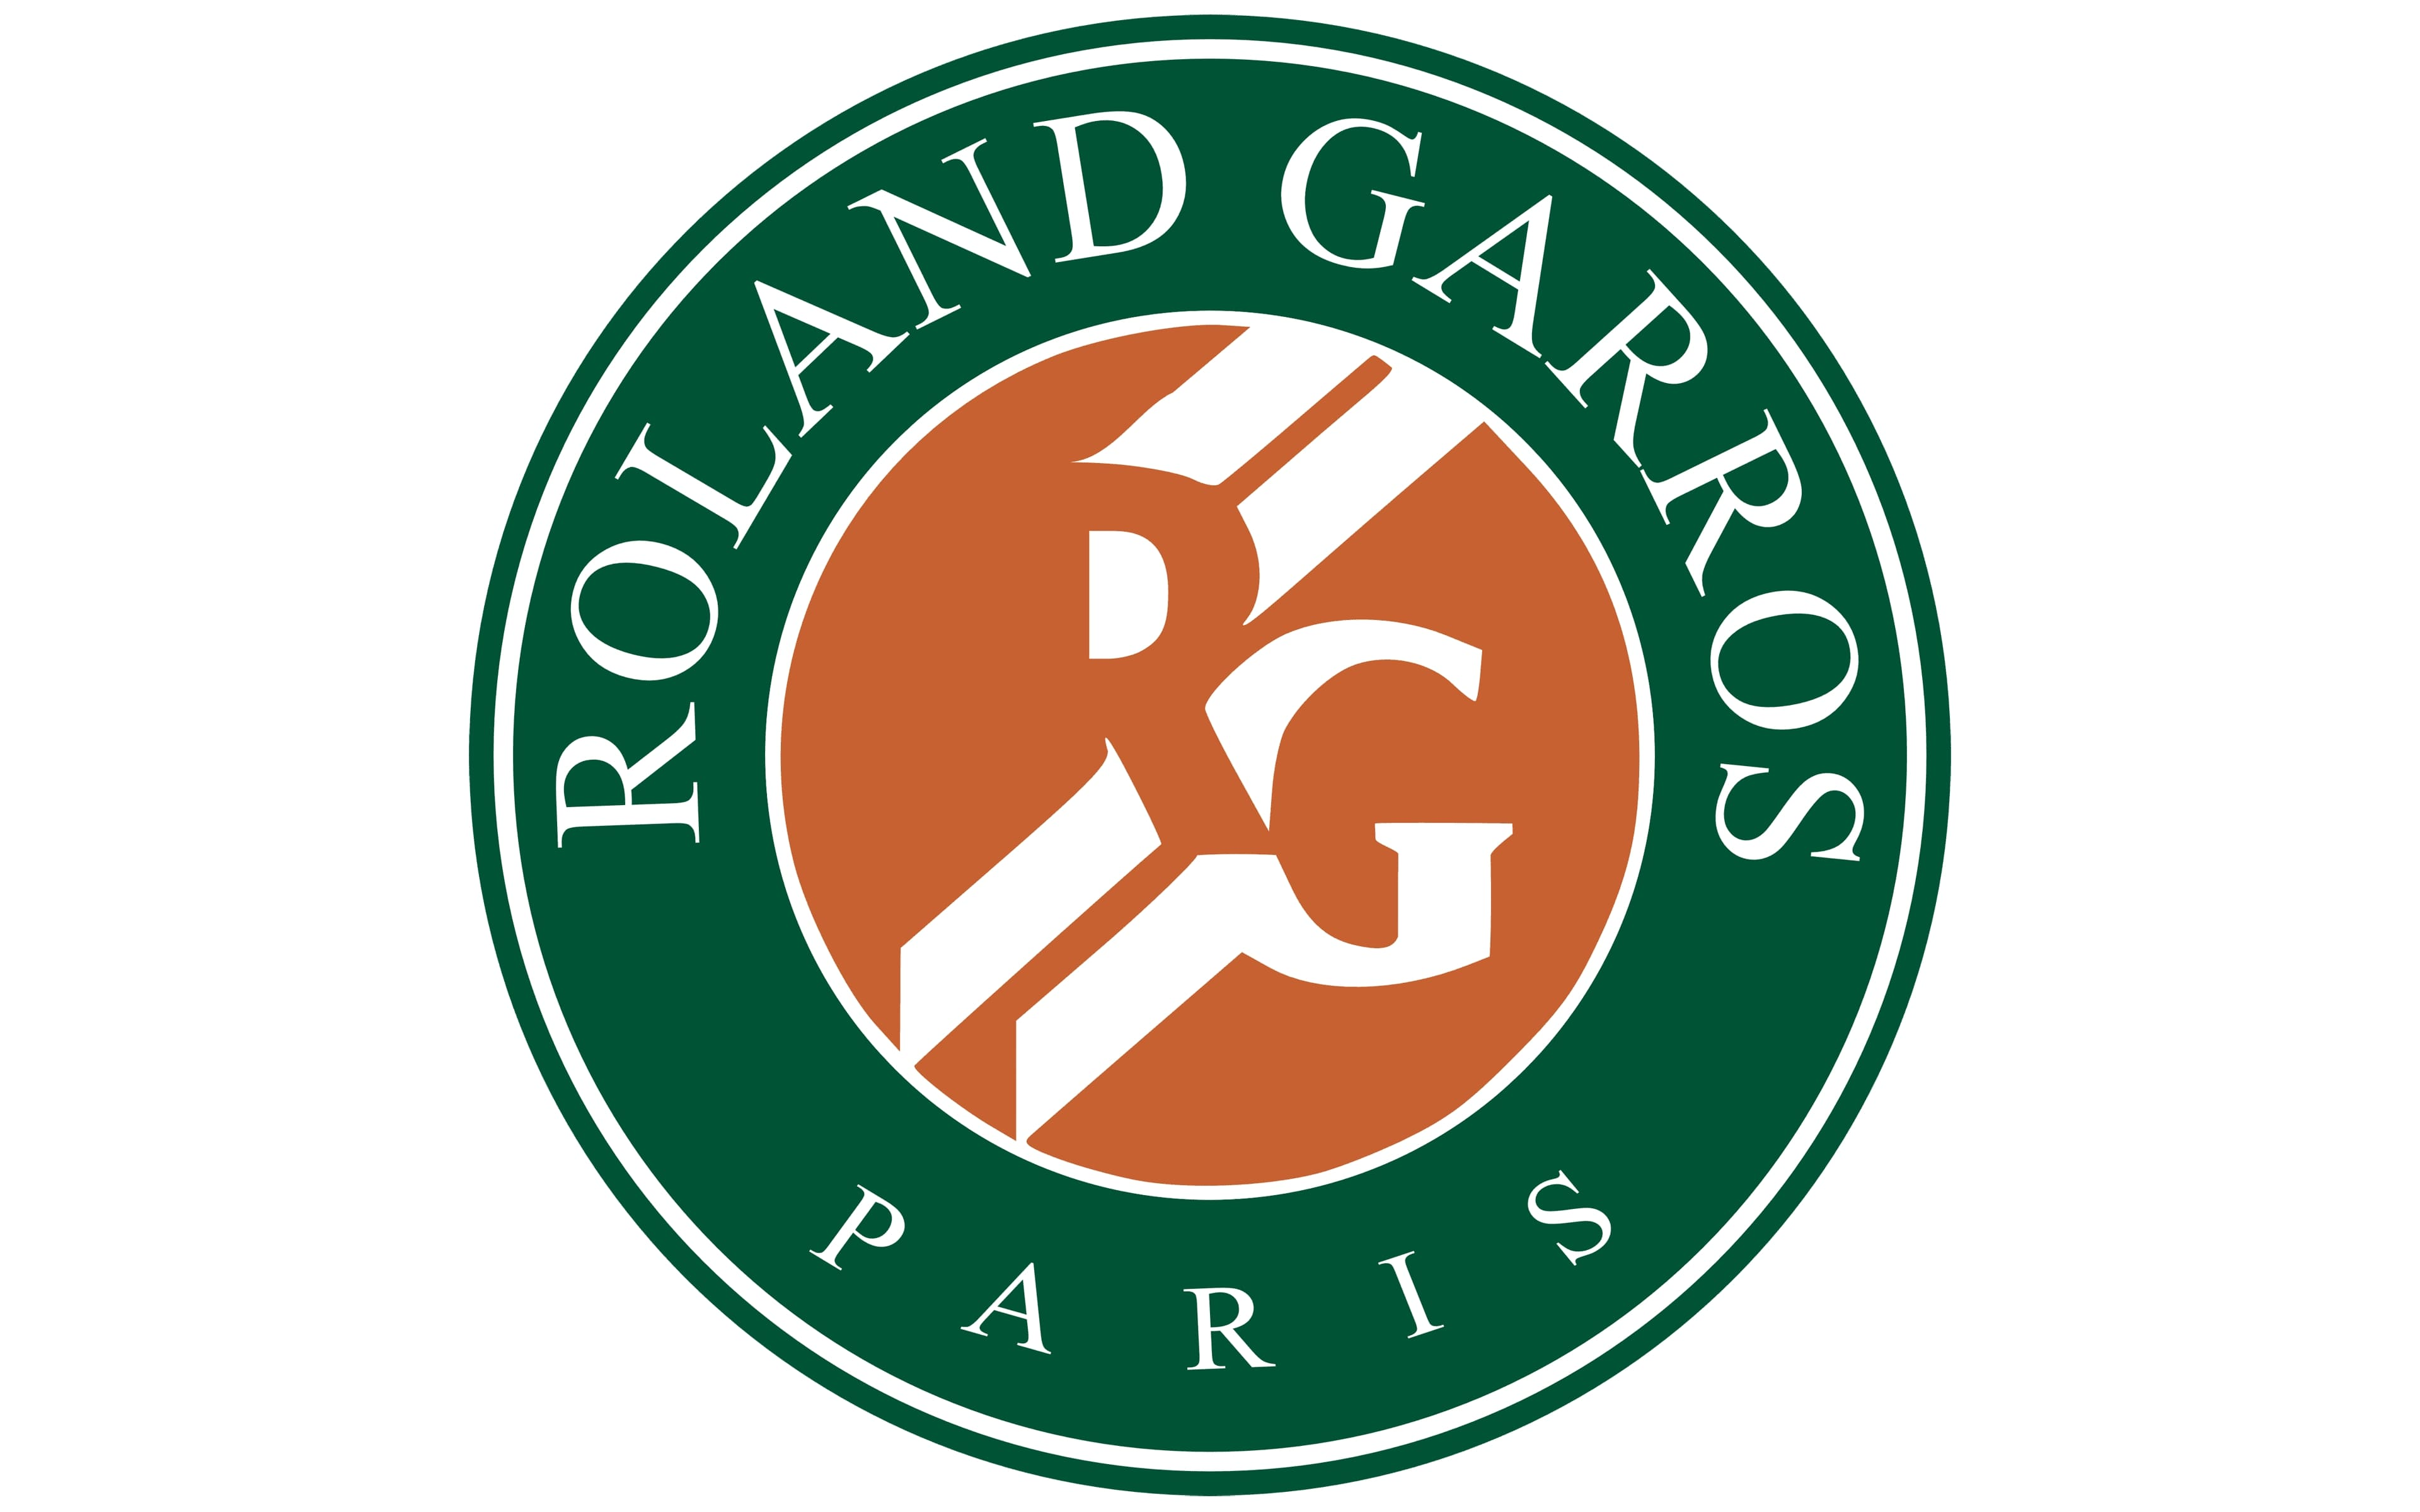 Roland Garros logo and symbol, meaning, history, PNG